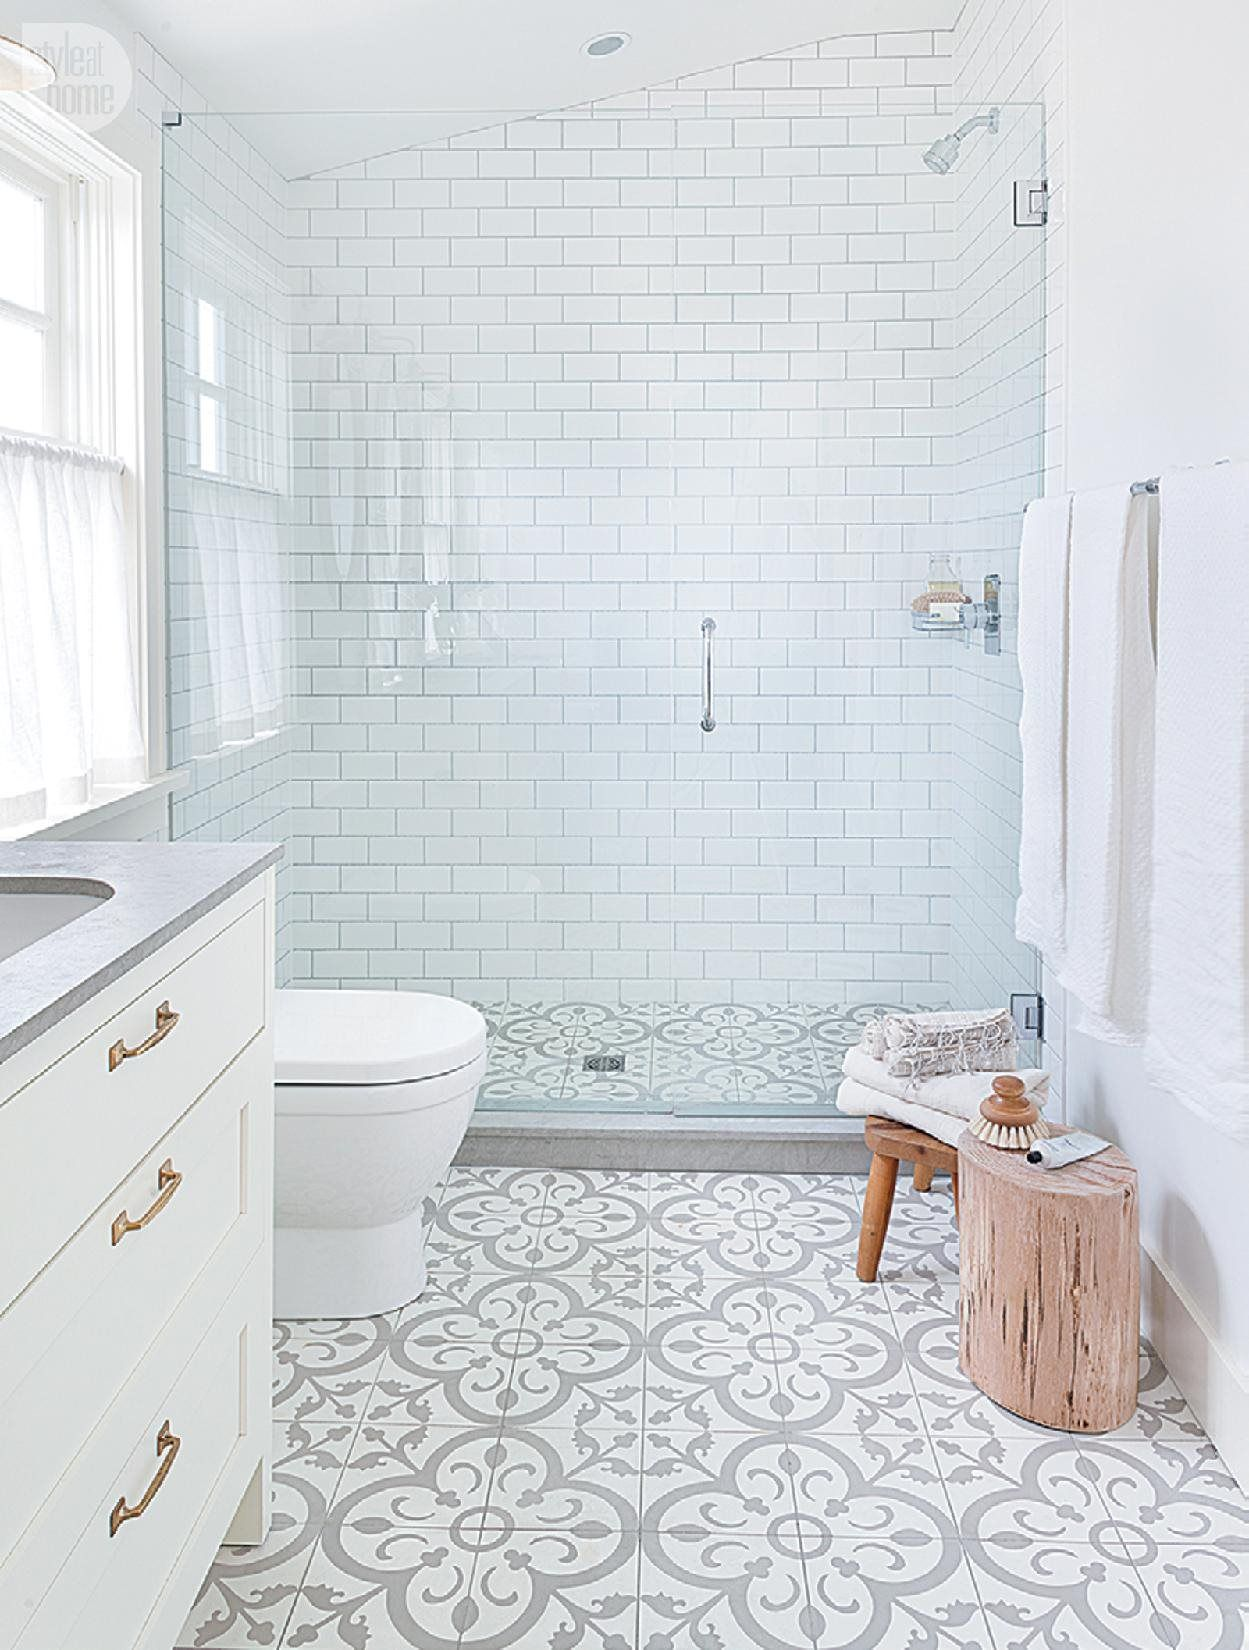 Encaustic Cement Tile - River City Tile Company | Master bath ...